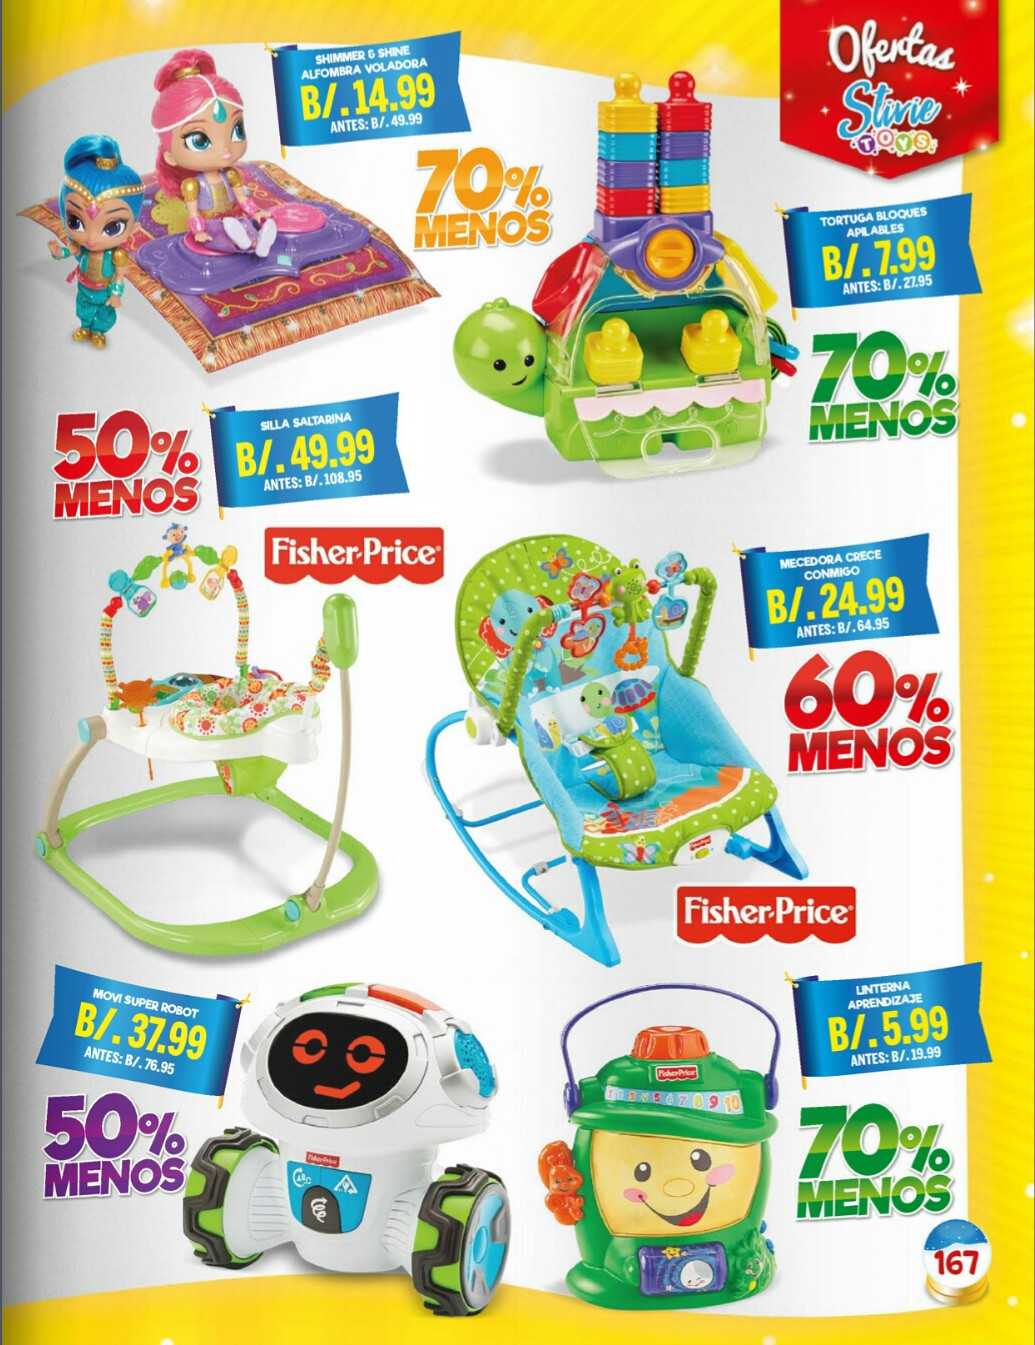 Catalogo juguetes Stivie toys 2018 p167